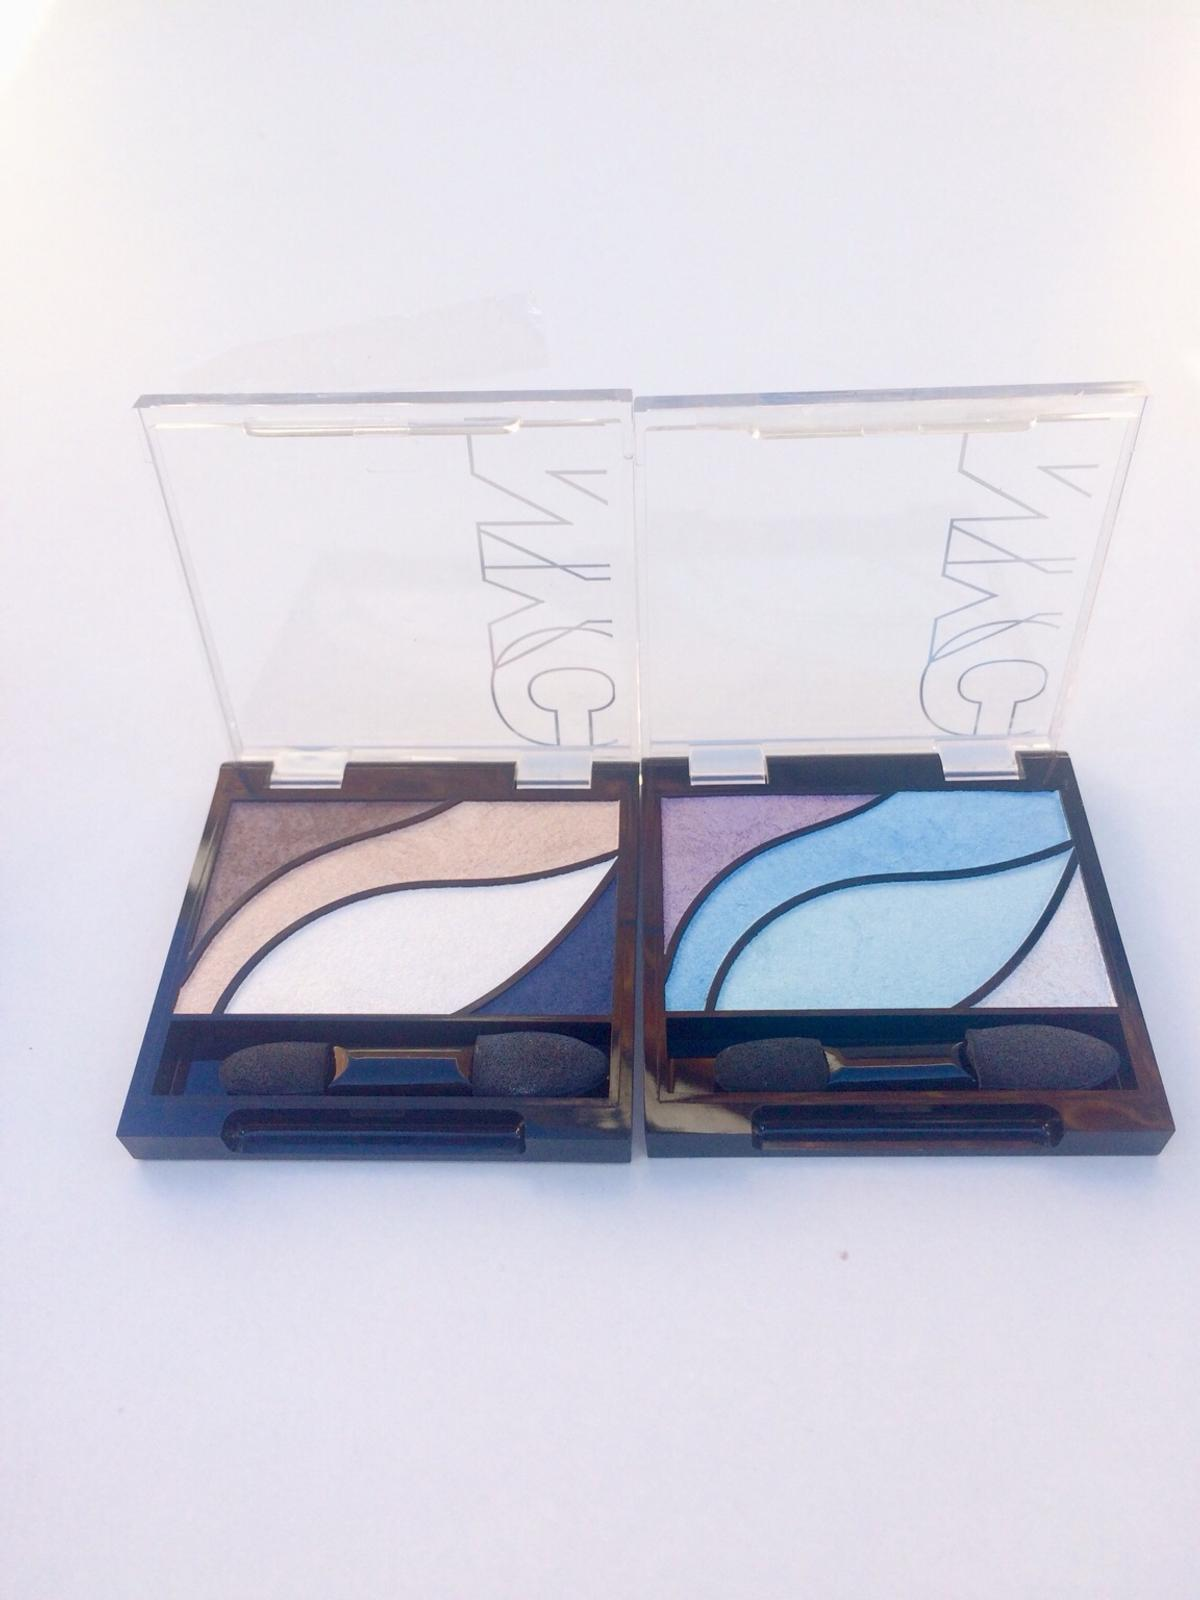 2 BRAND NEW PALLETS NYC EYESHADOW in LE4 Leicester for £4 00 for